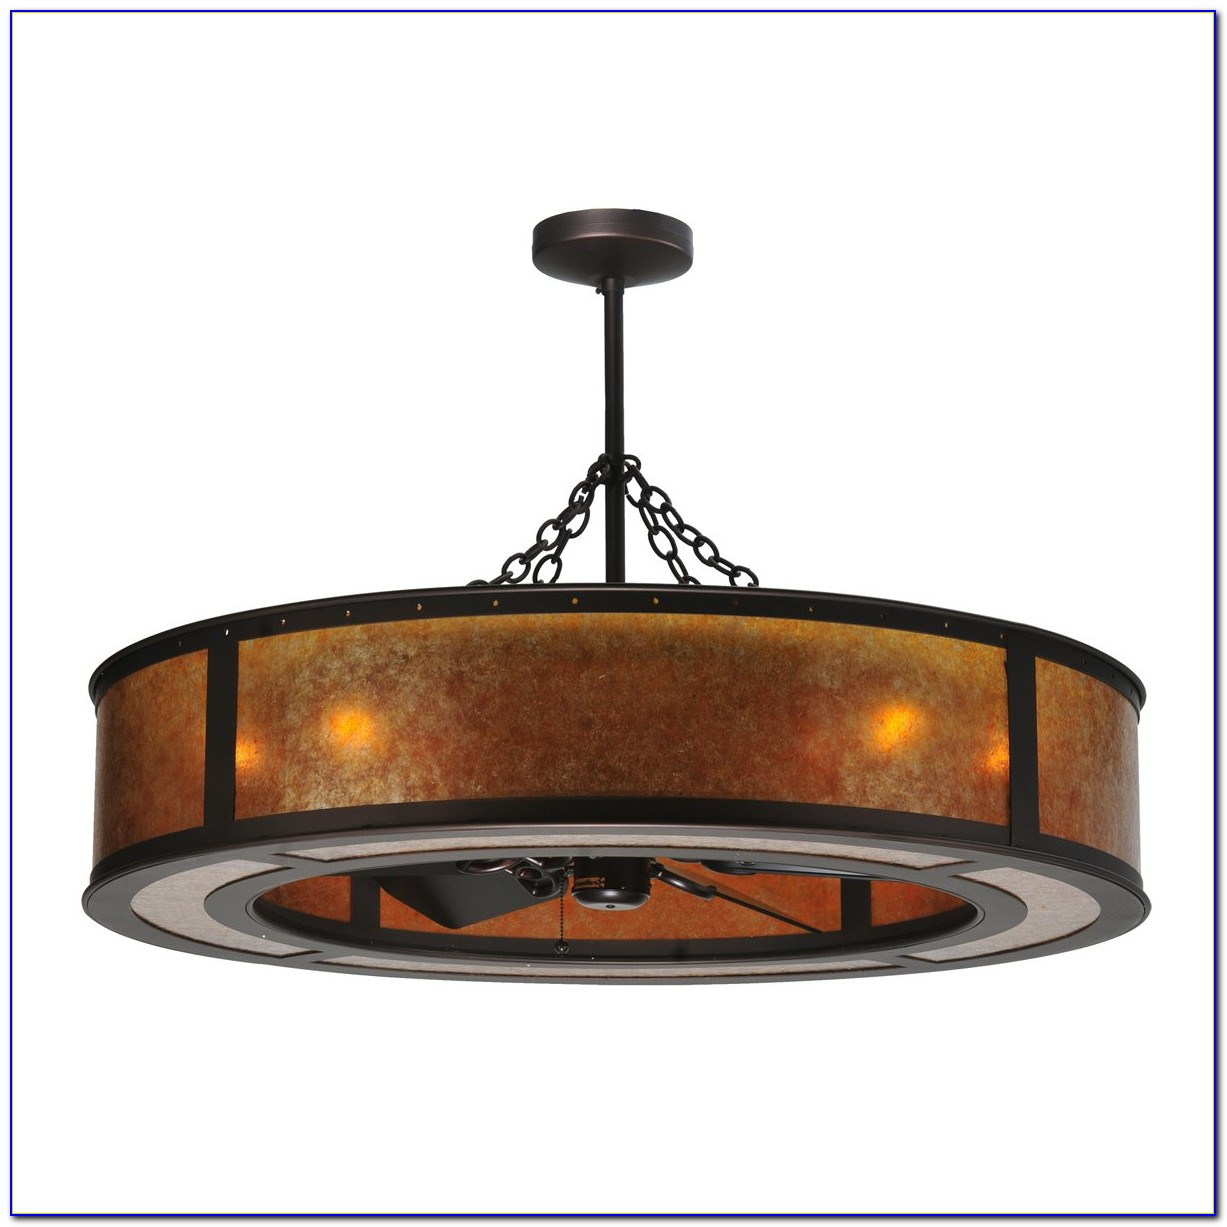 Craftsman Style Ceiling Light Fixture